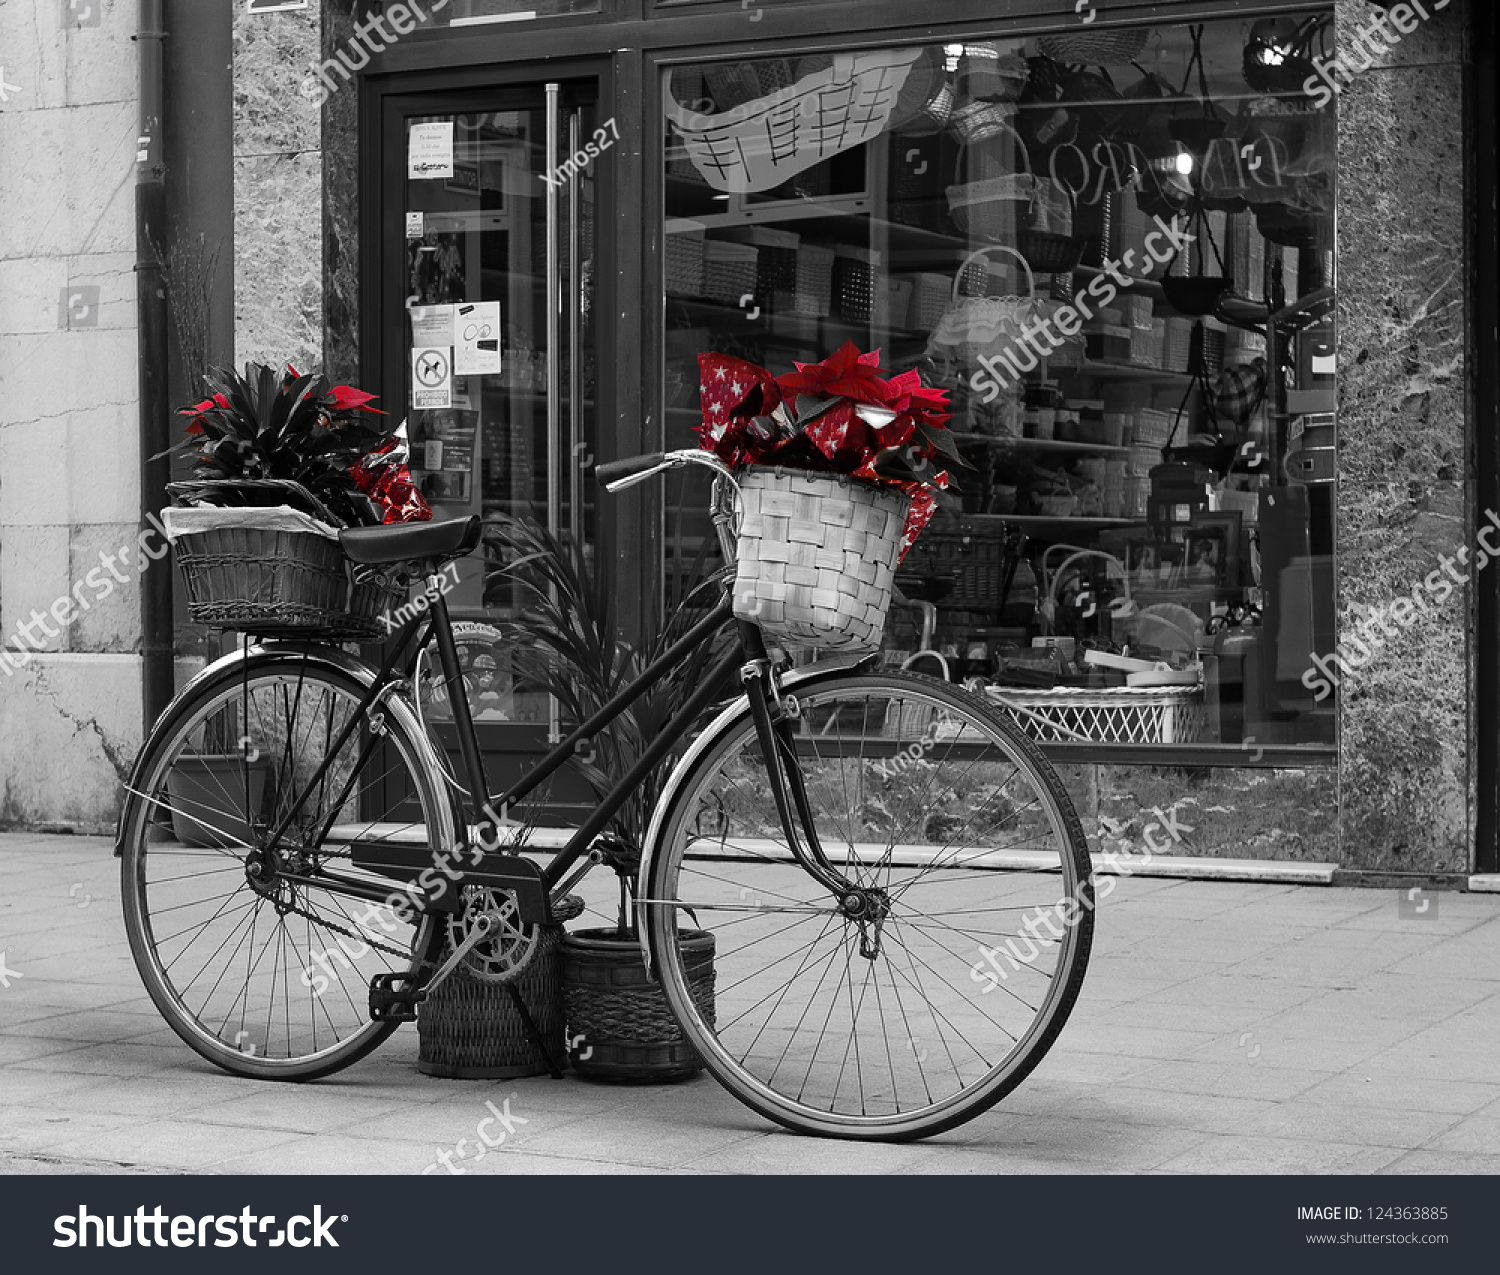 Bicycle #124363885